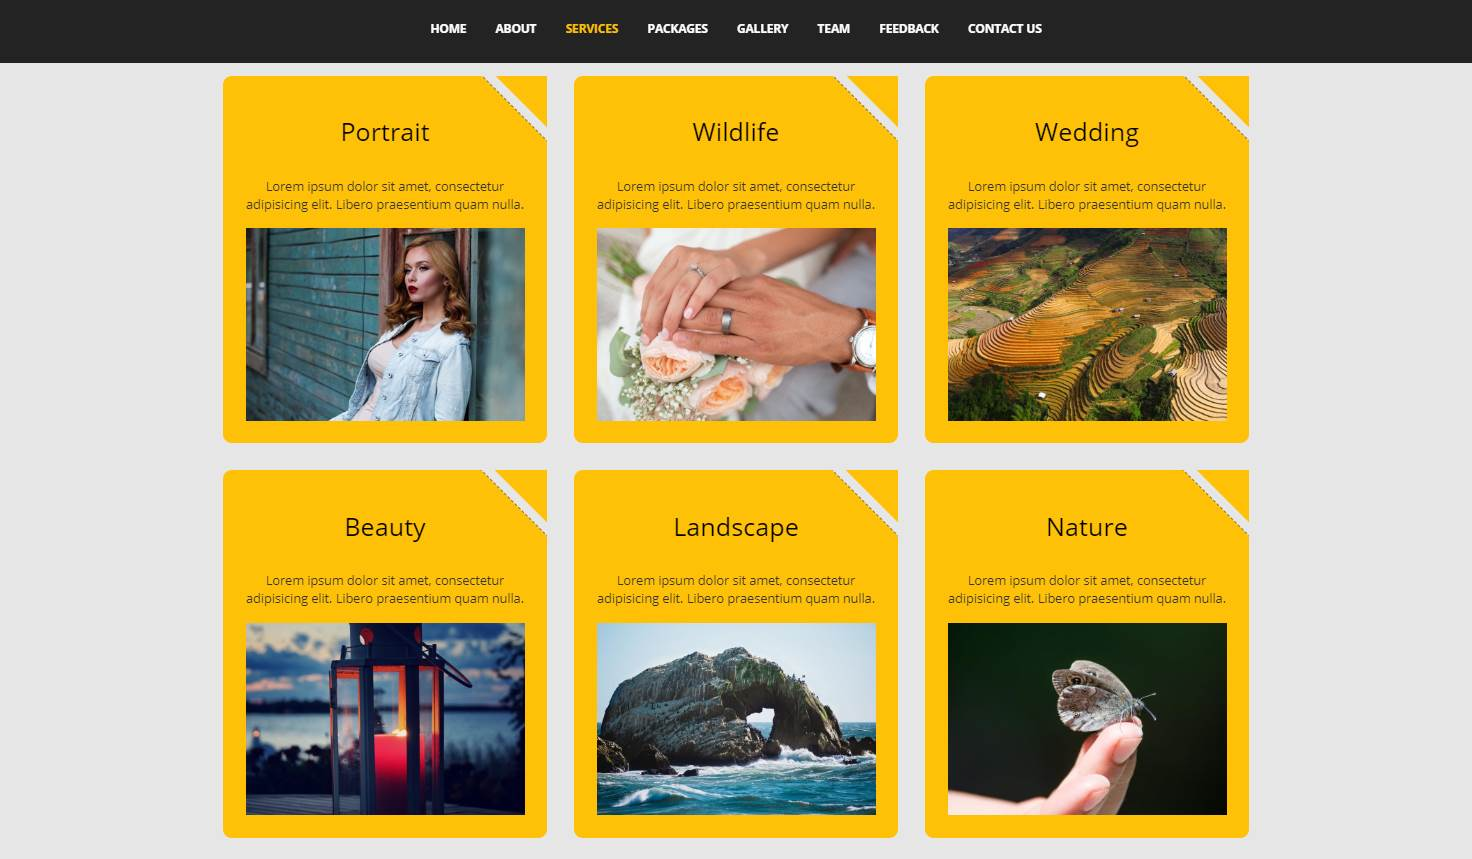 Focus: A Nice Photography Website Template